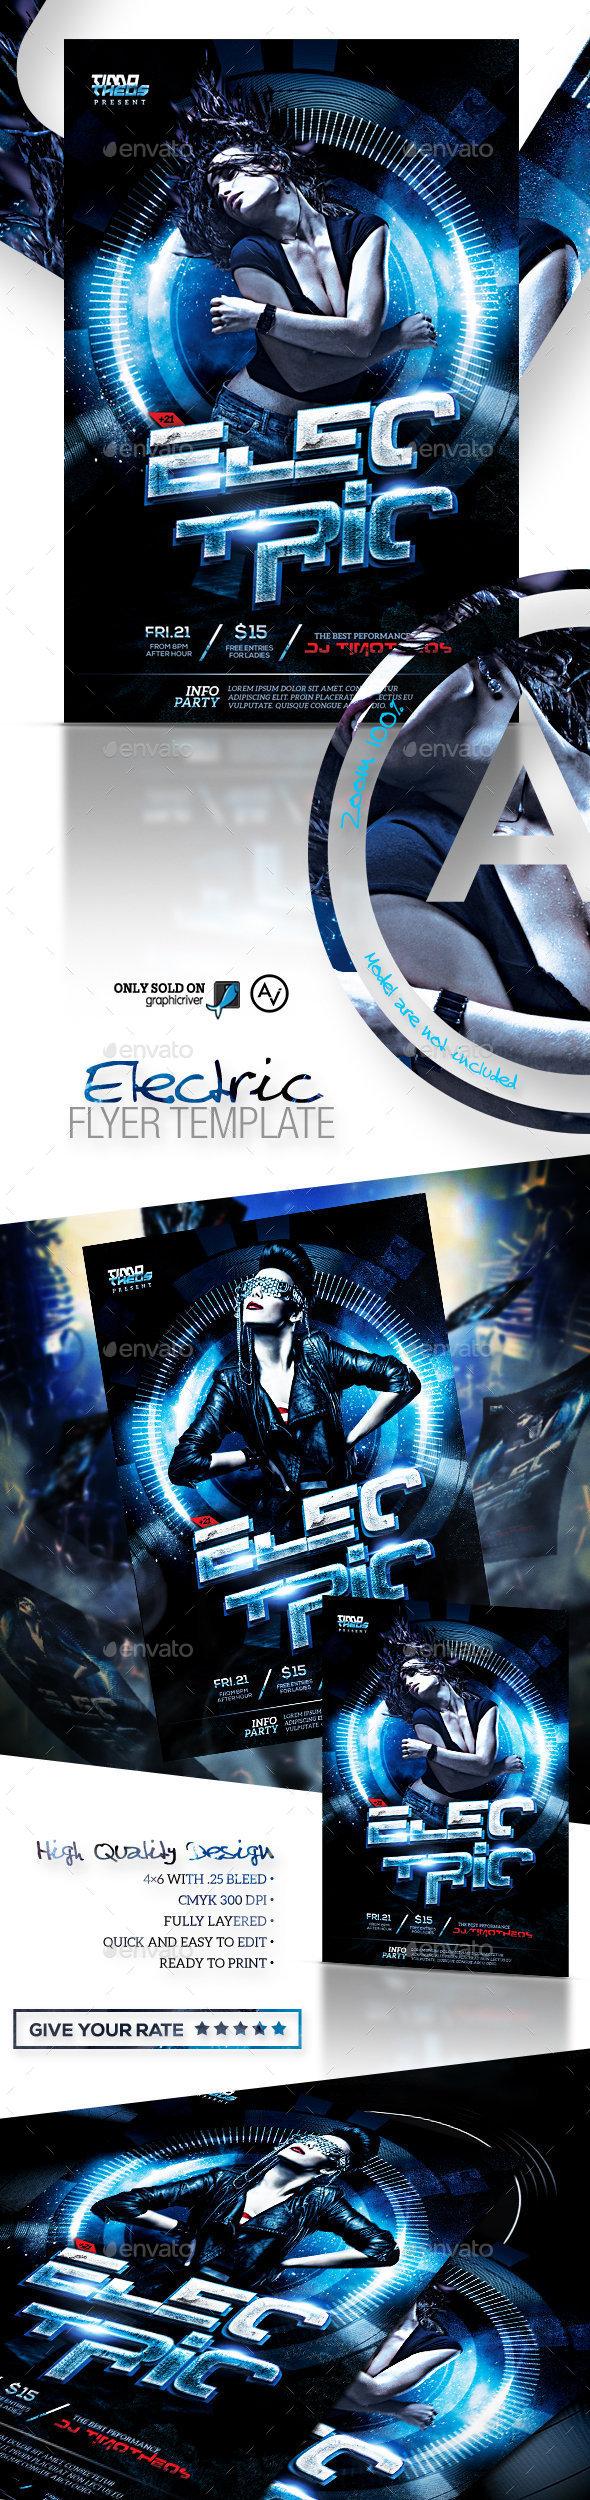 Electric Flyer Template - Clubs & Parties Events